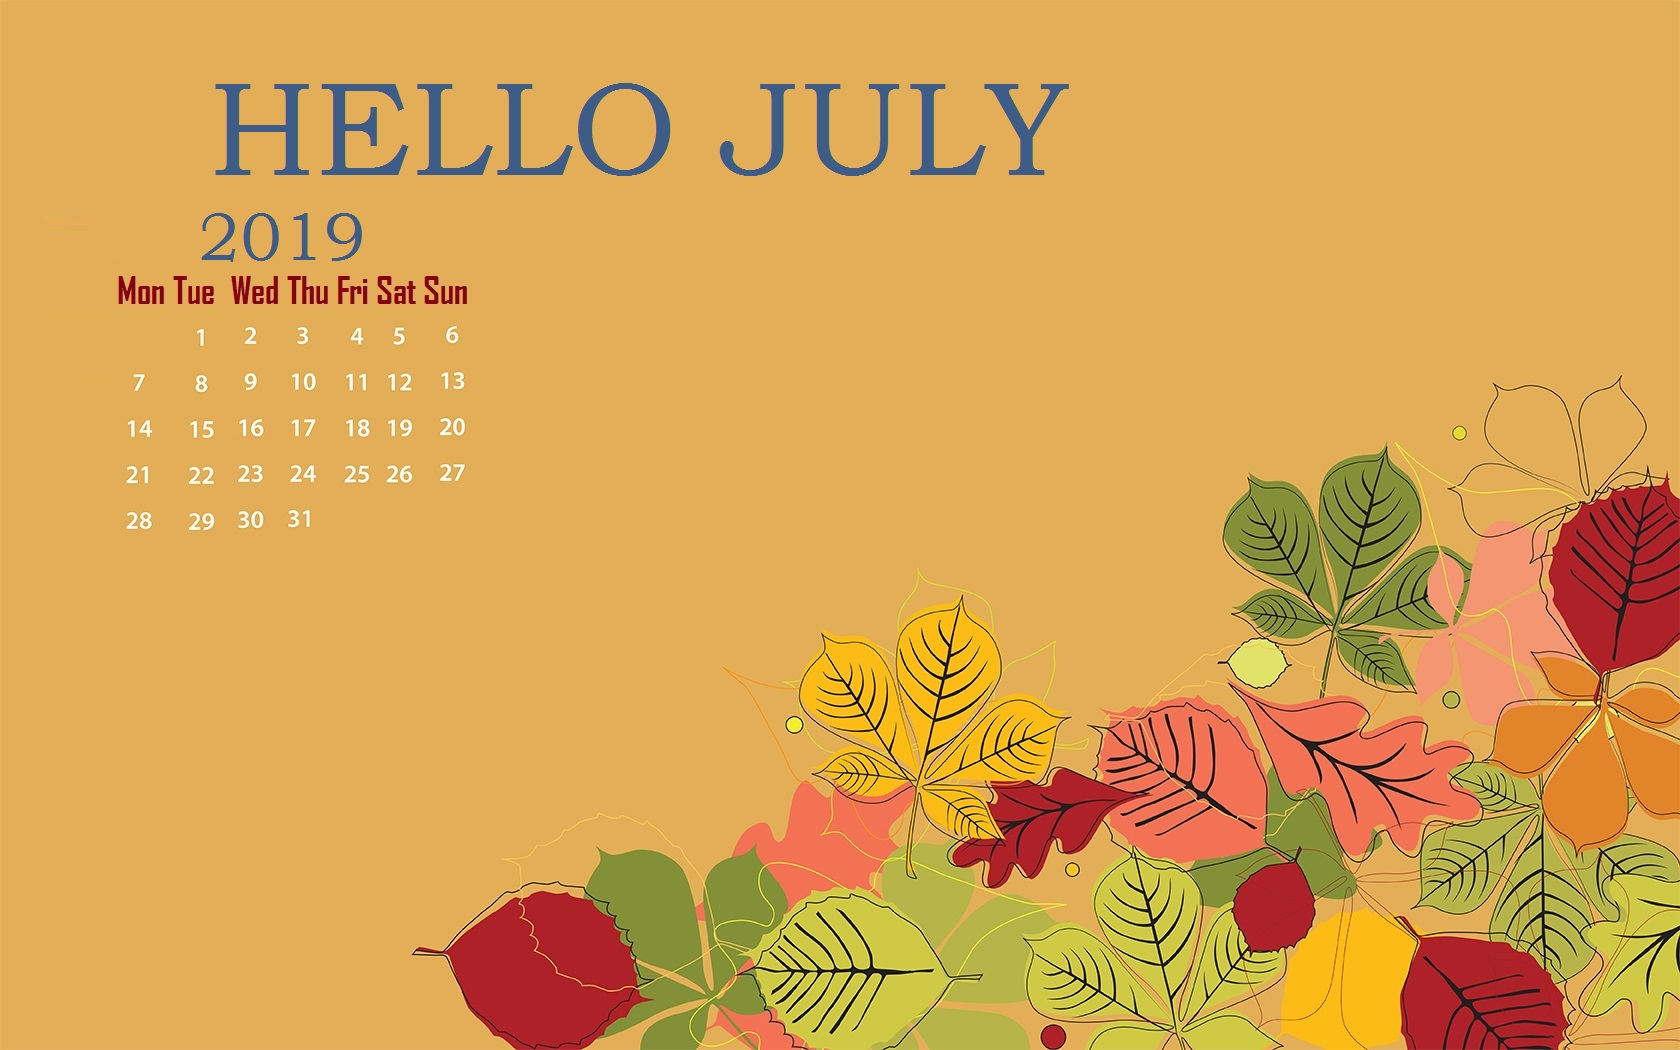 Unique Wallpaper with July 2019 Calendar